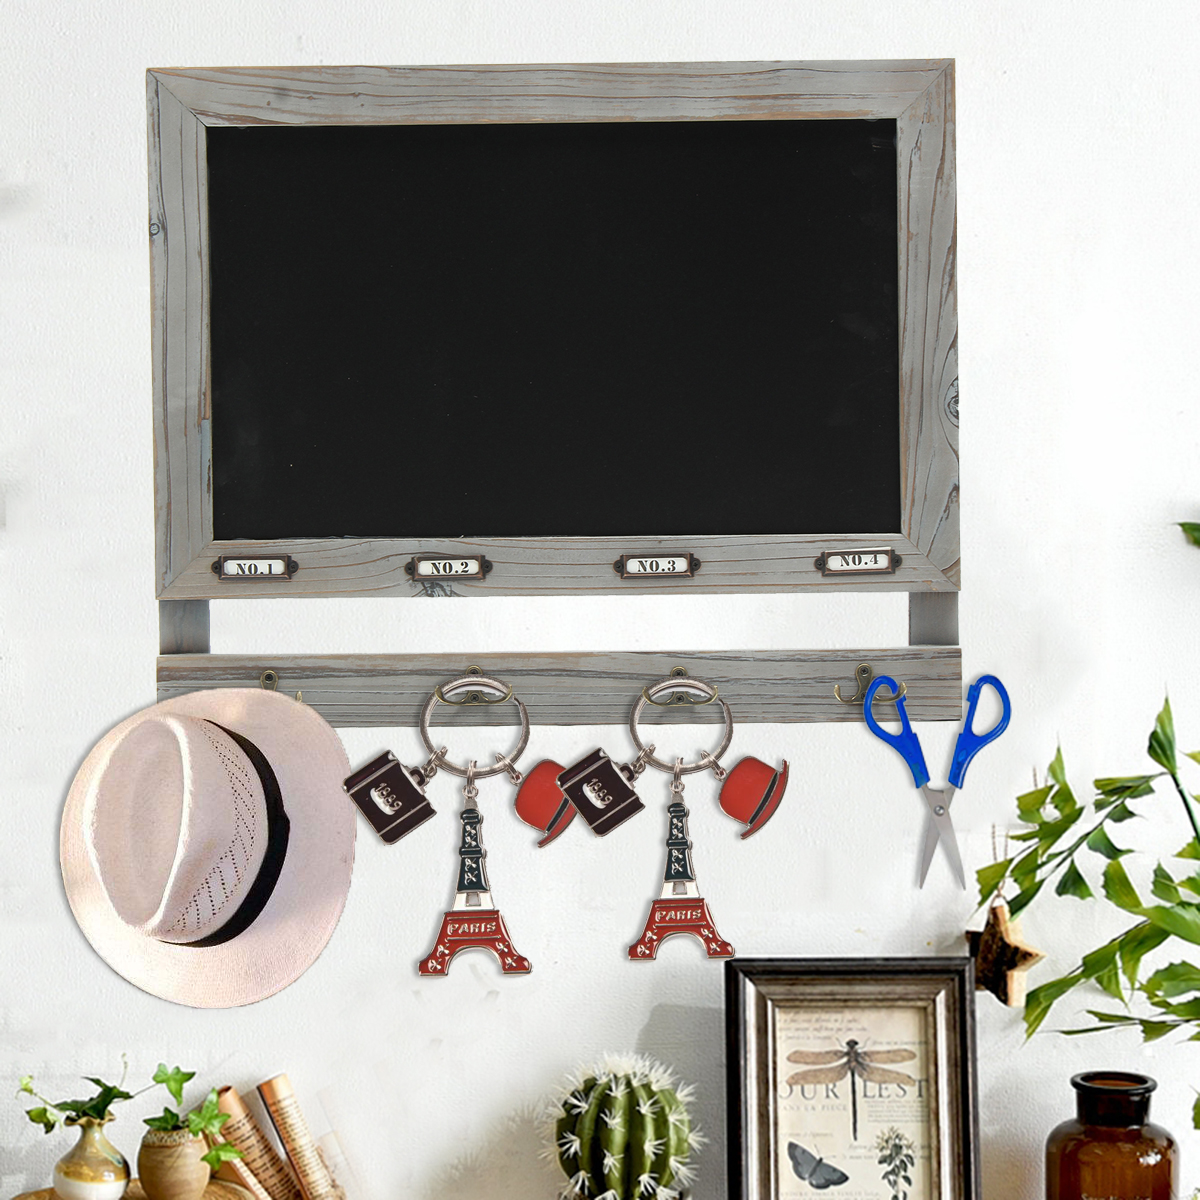 Rustic Framed Chalk Board Wall Mounted Vintage Memo Message Notice Menu Display Board w/ Hangers